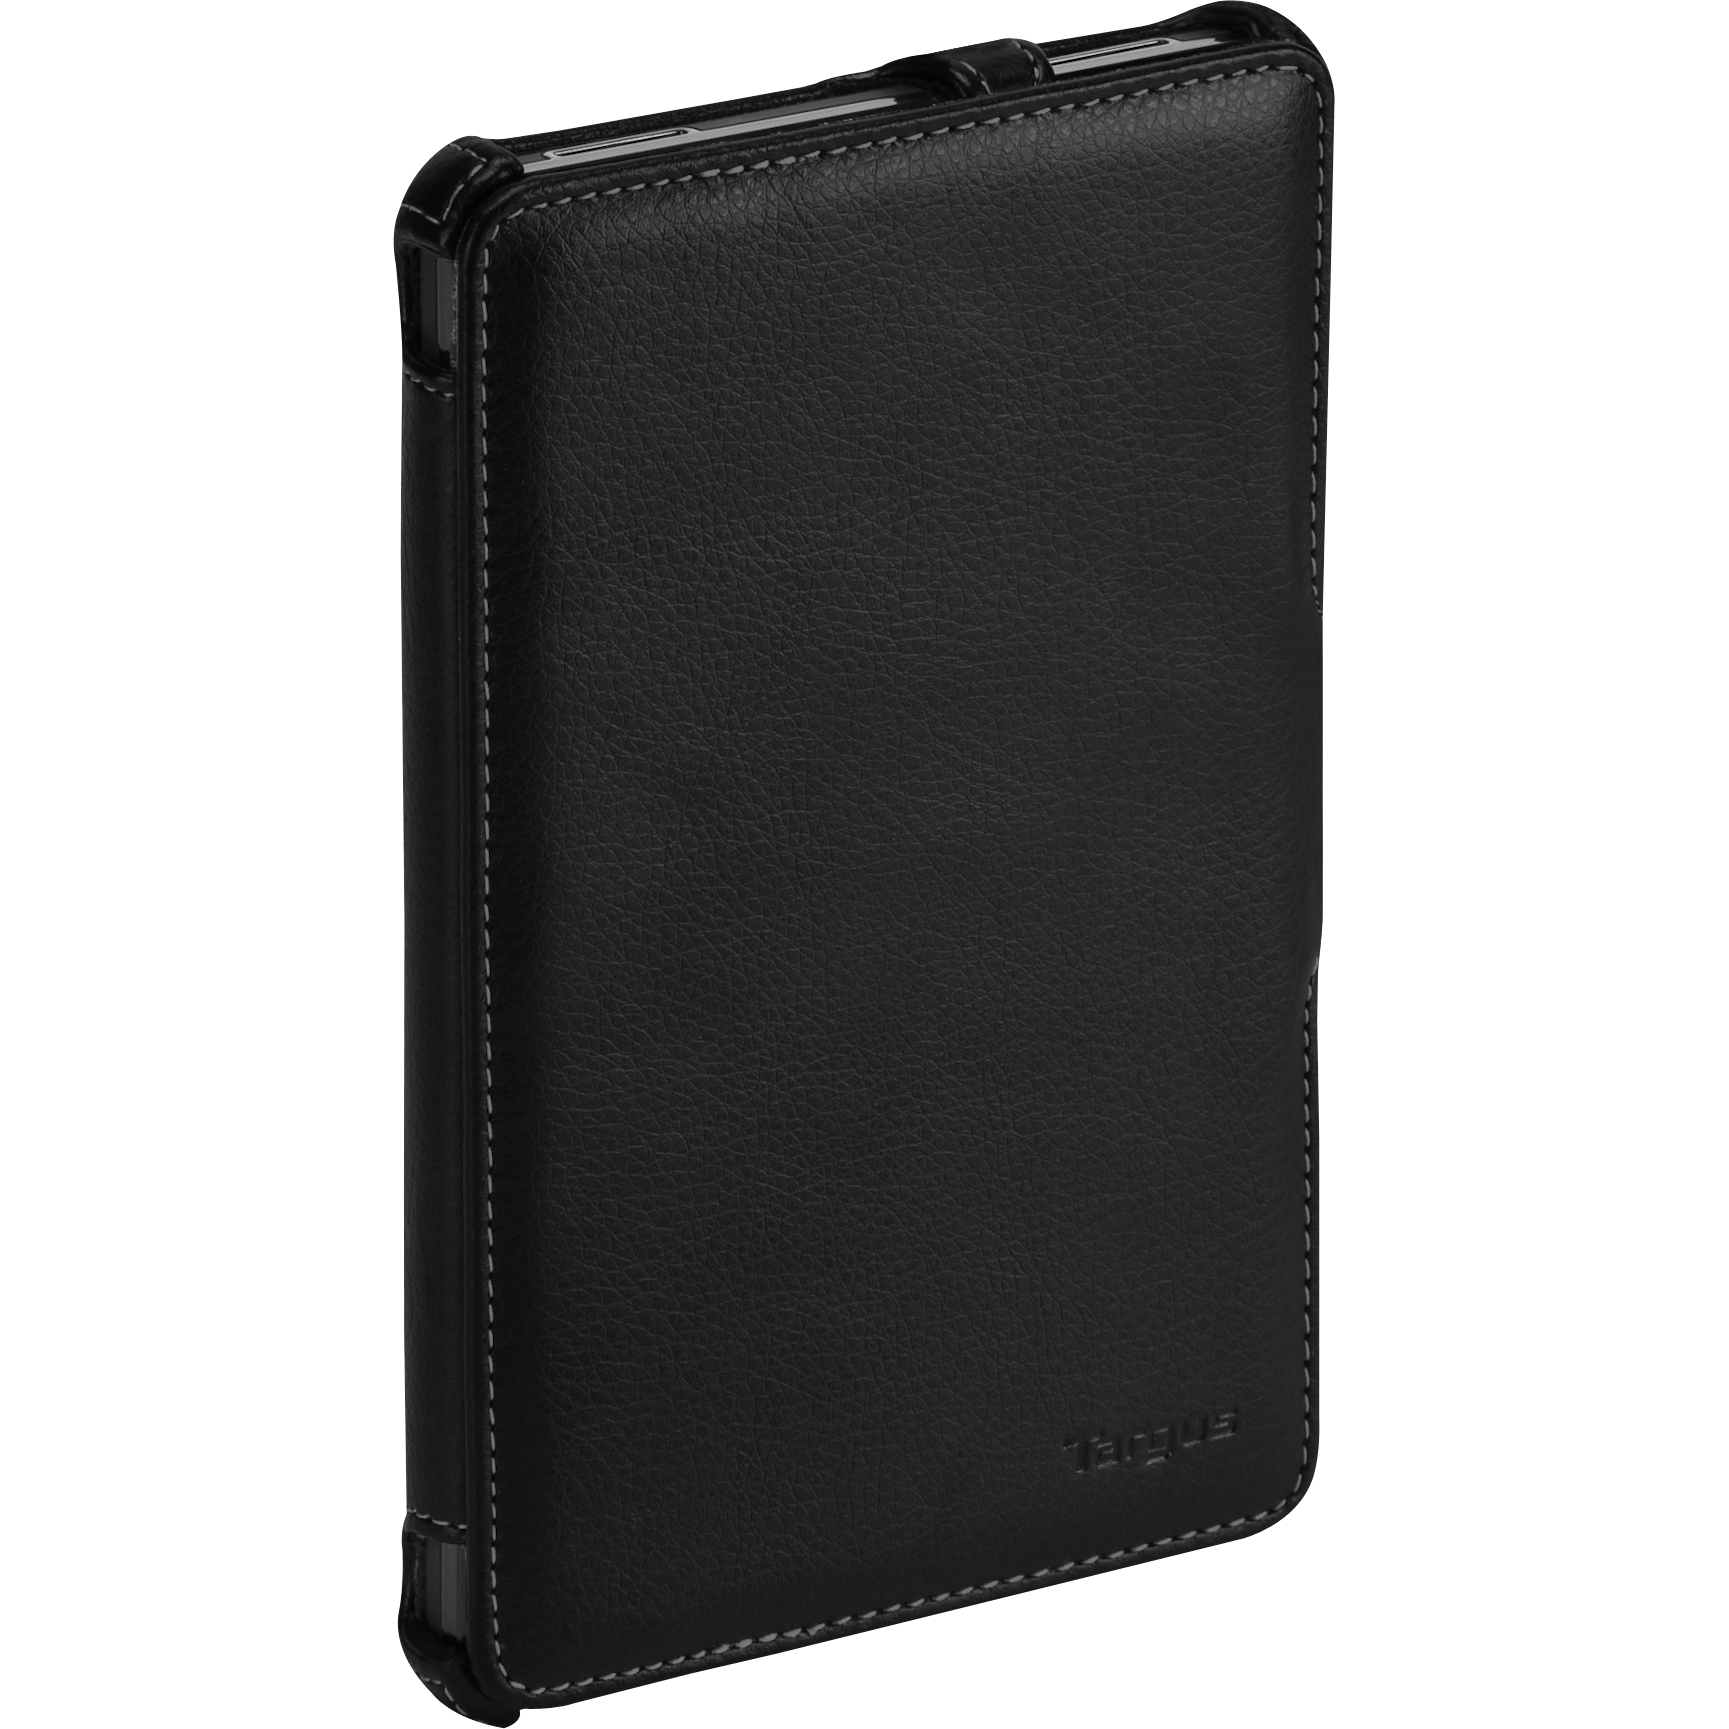 Kindle fire protective case kindle fire protective case images - Picture Of Vuscape Case Stand For Kindle Fire